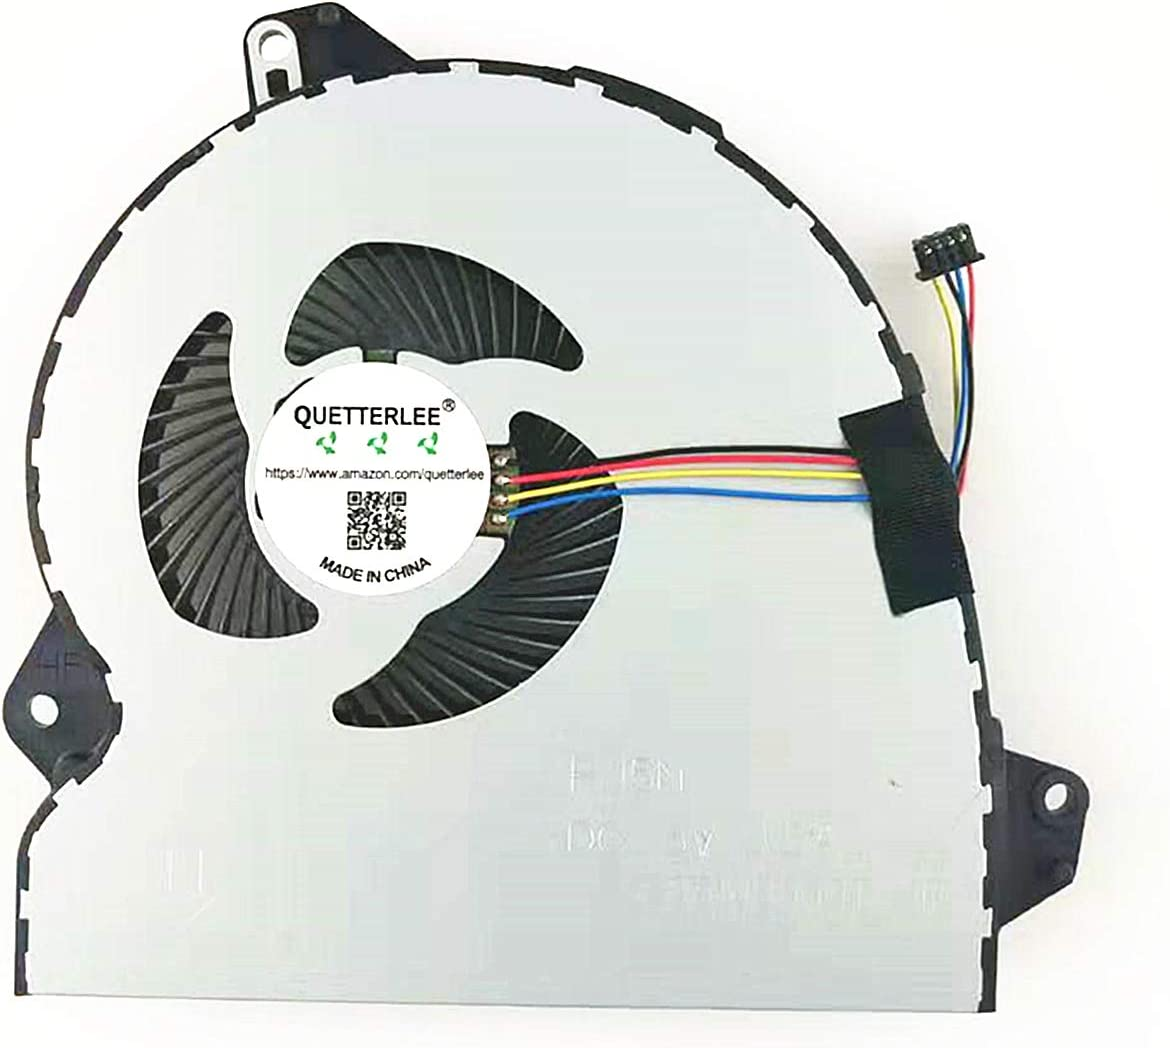 QUETTERLEE New CPU Cooling Fan for ASUS ROG Strix GL553 GL553V GL553VE GL553VD GL553VW ZX53 ZX53V ZX53VE ZX53VD ZX53VW GL753 V VD VE FX73 FX53 KX53 FX53V FX53VD FX53VE Series DFS2001055GOT FJ5N Fan